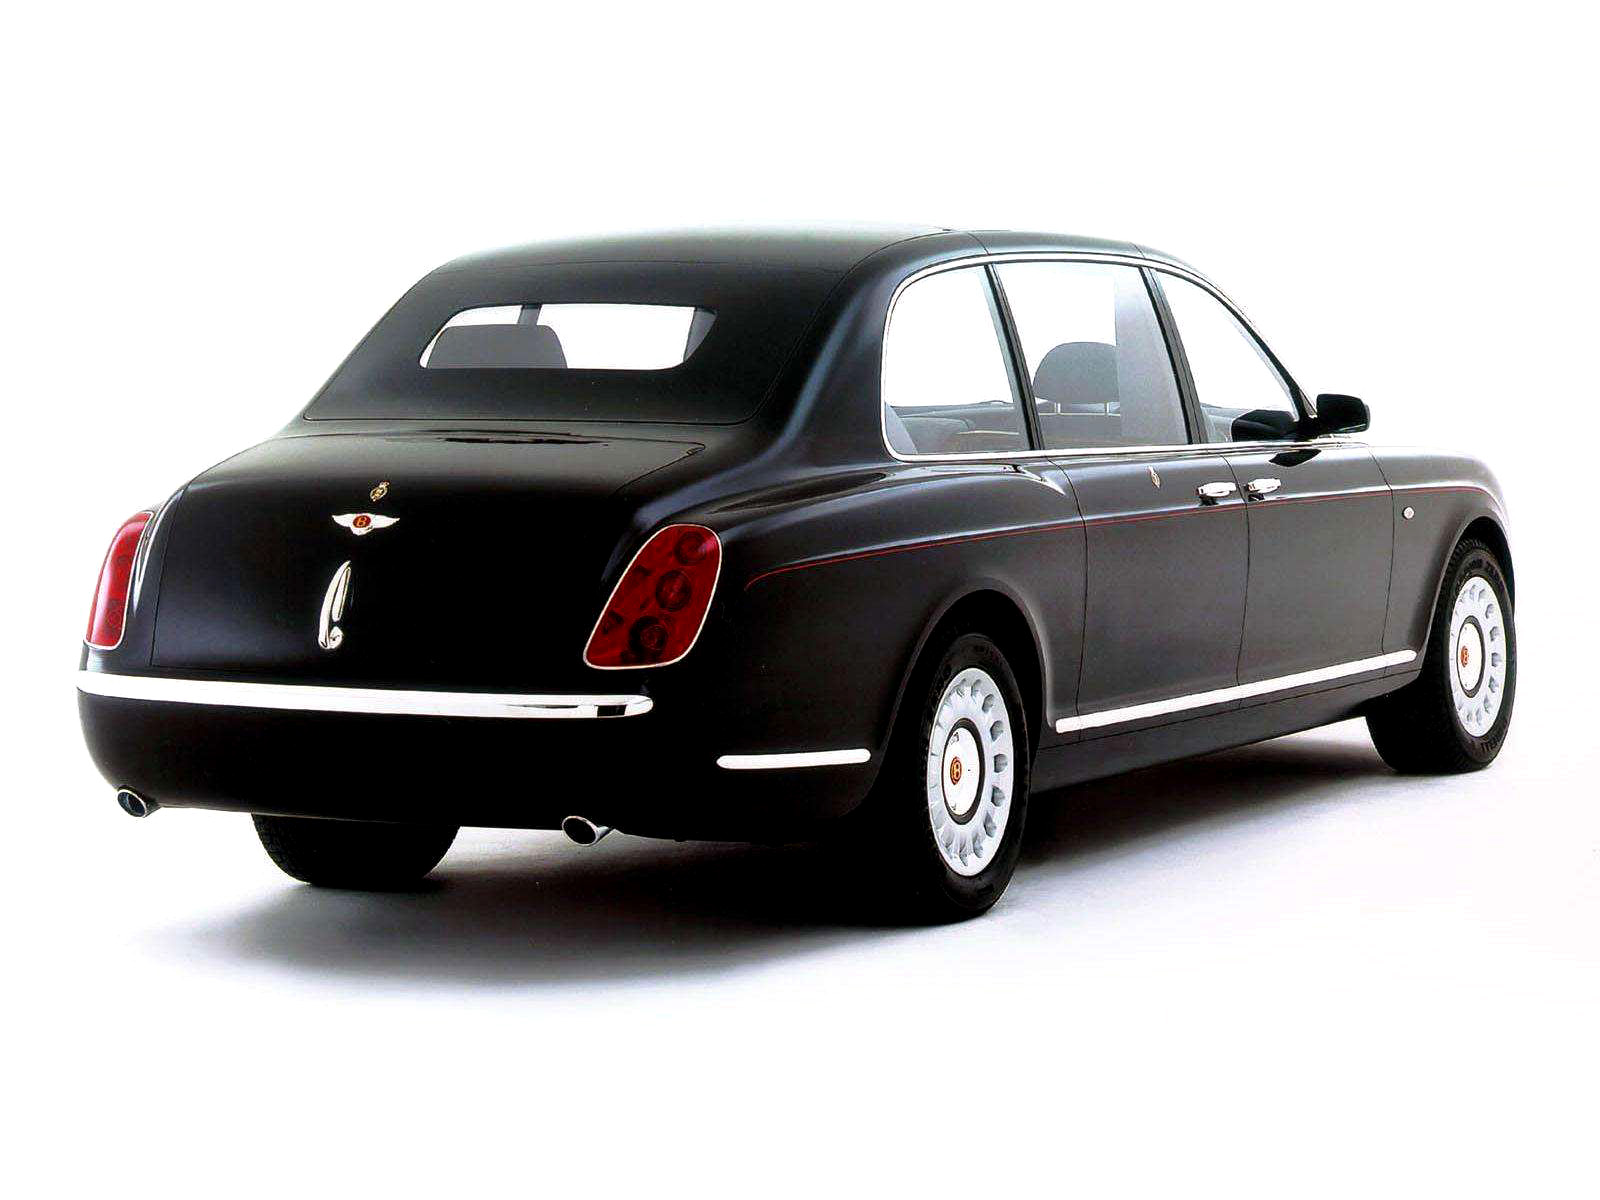 bentley compartment file state commons wiki limousine wikimedia